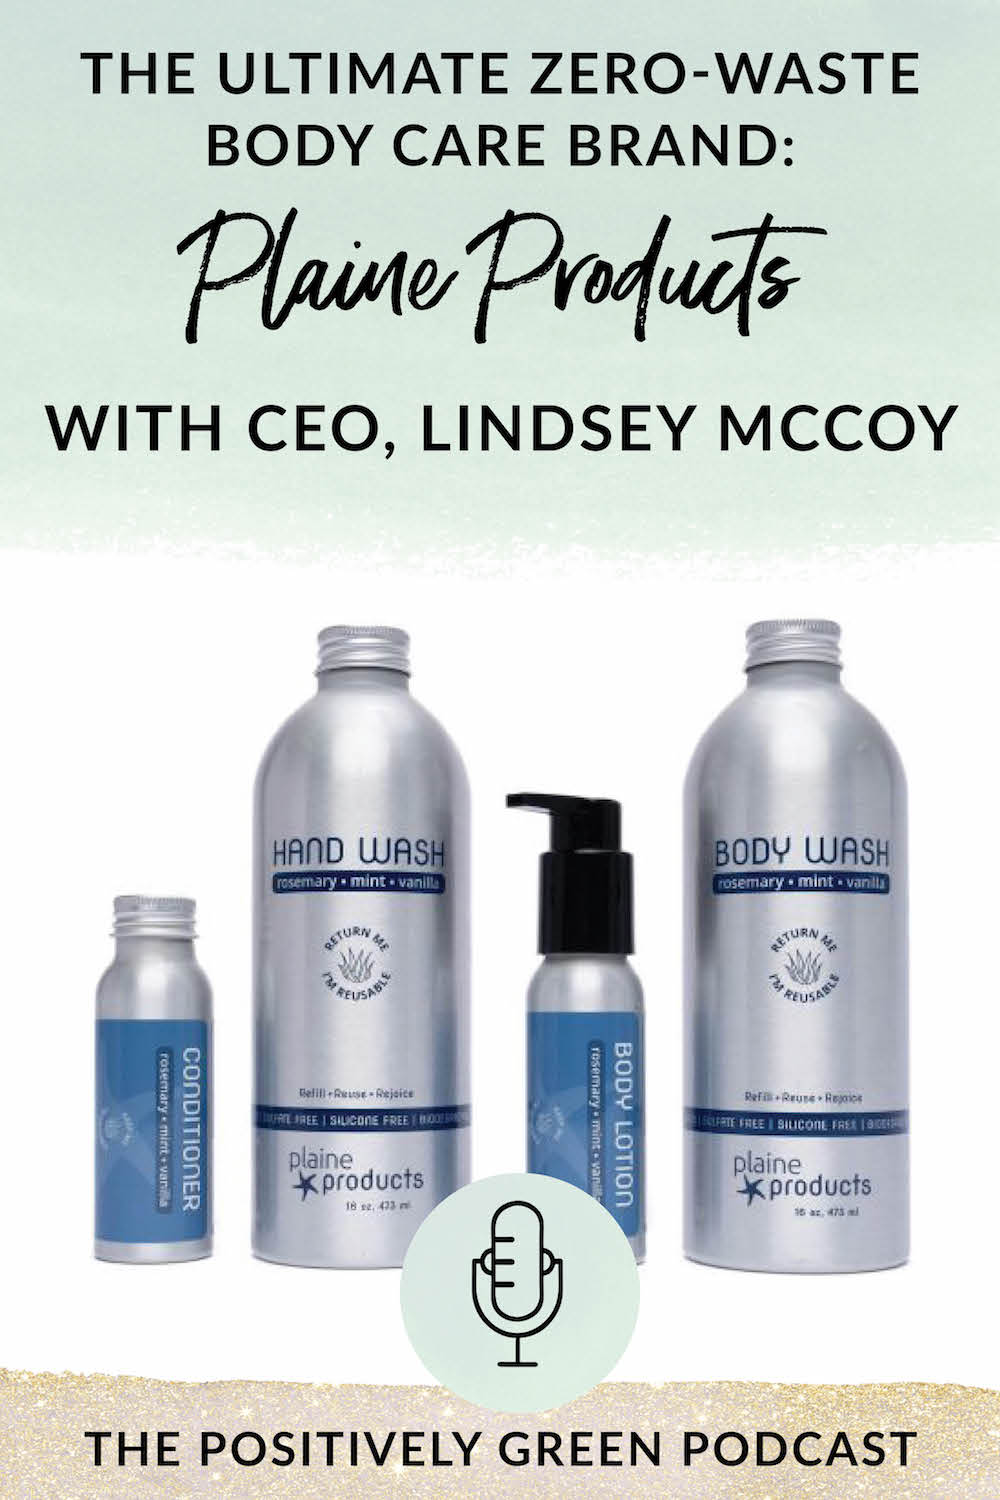 The ultimate zero-waste body care brand Plaine Products